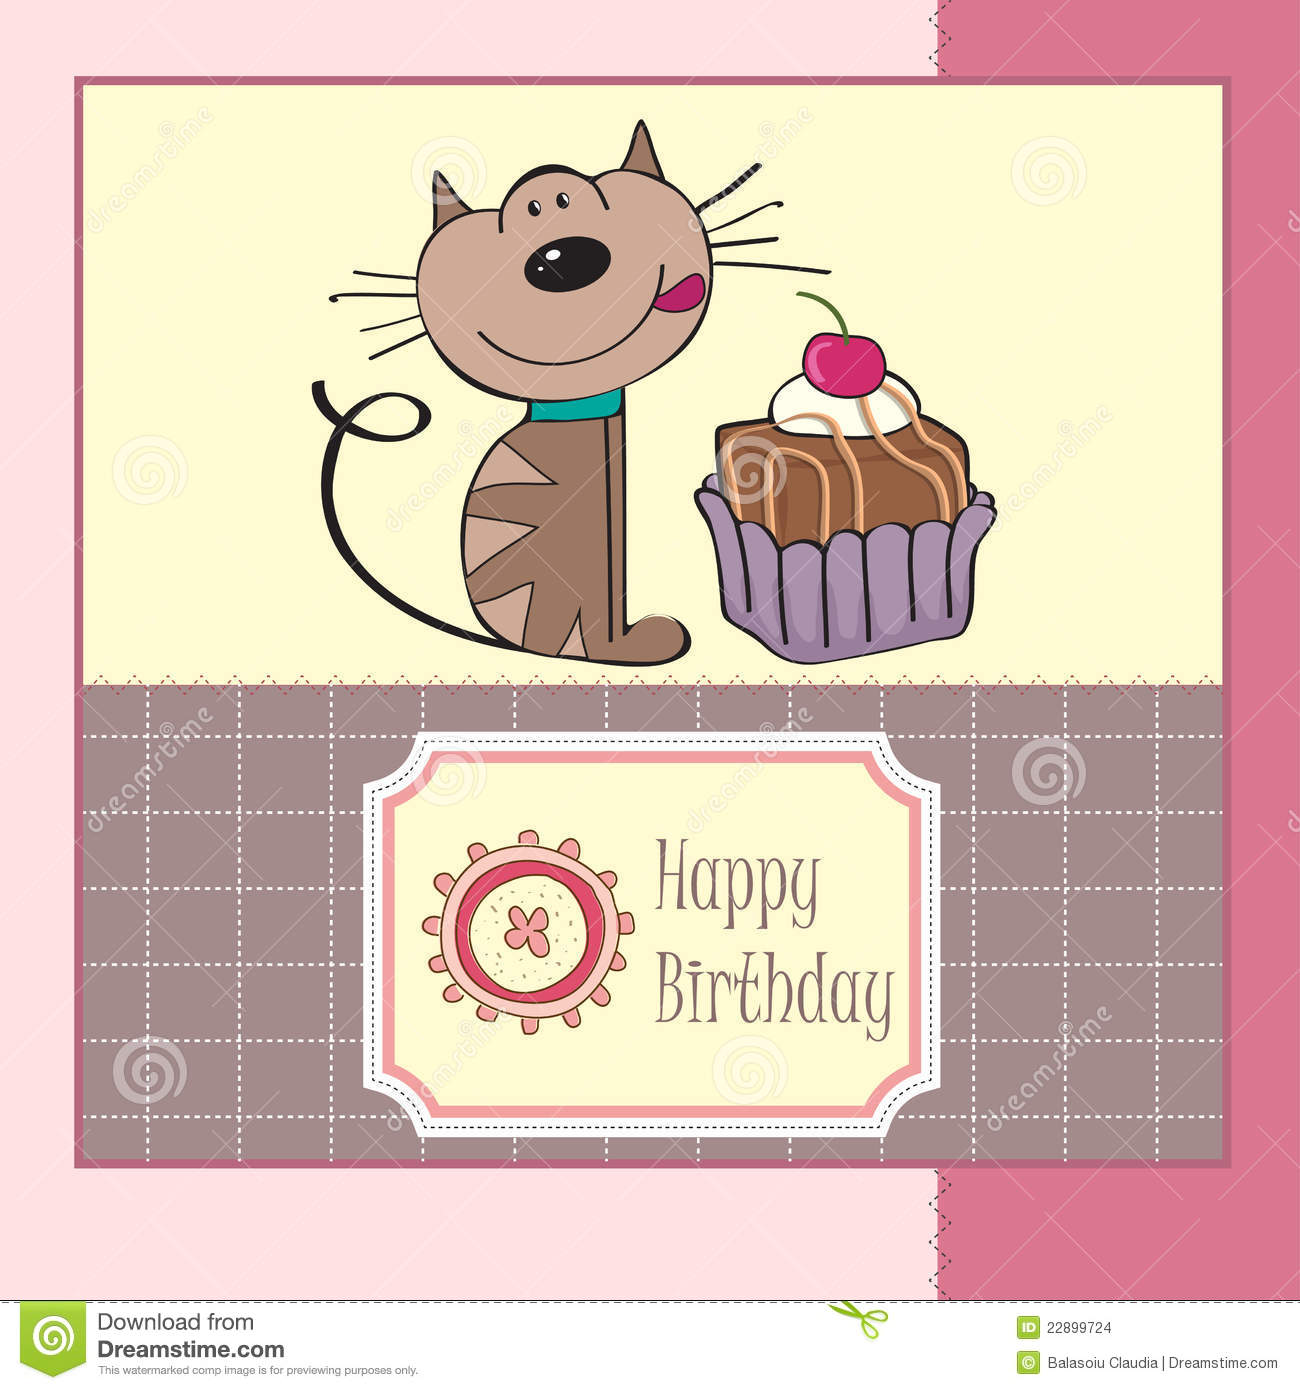 More similar stock images of ` Birthday greeting card with cat `